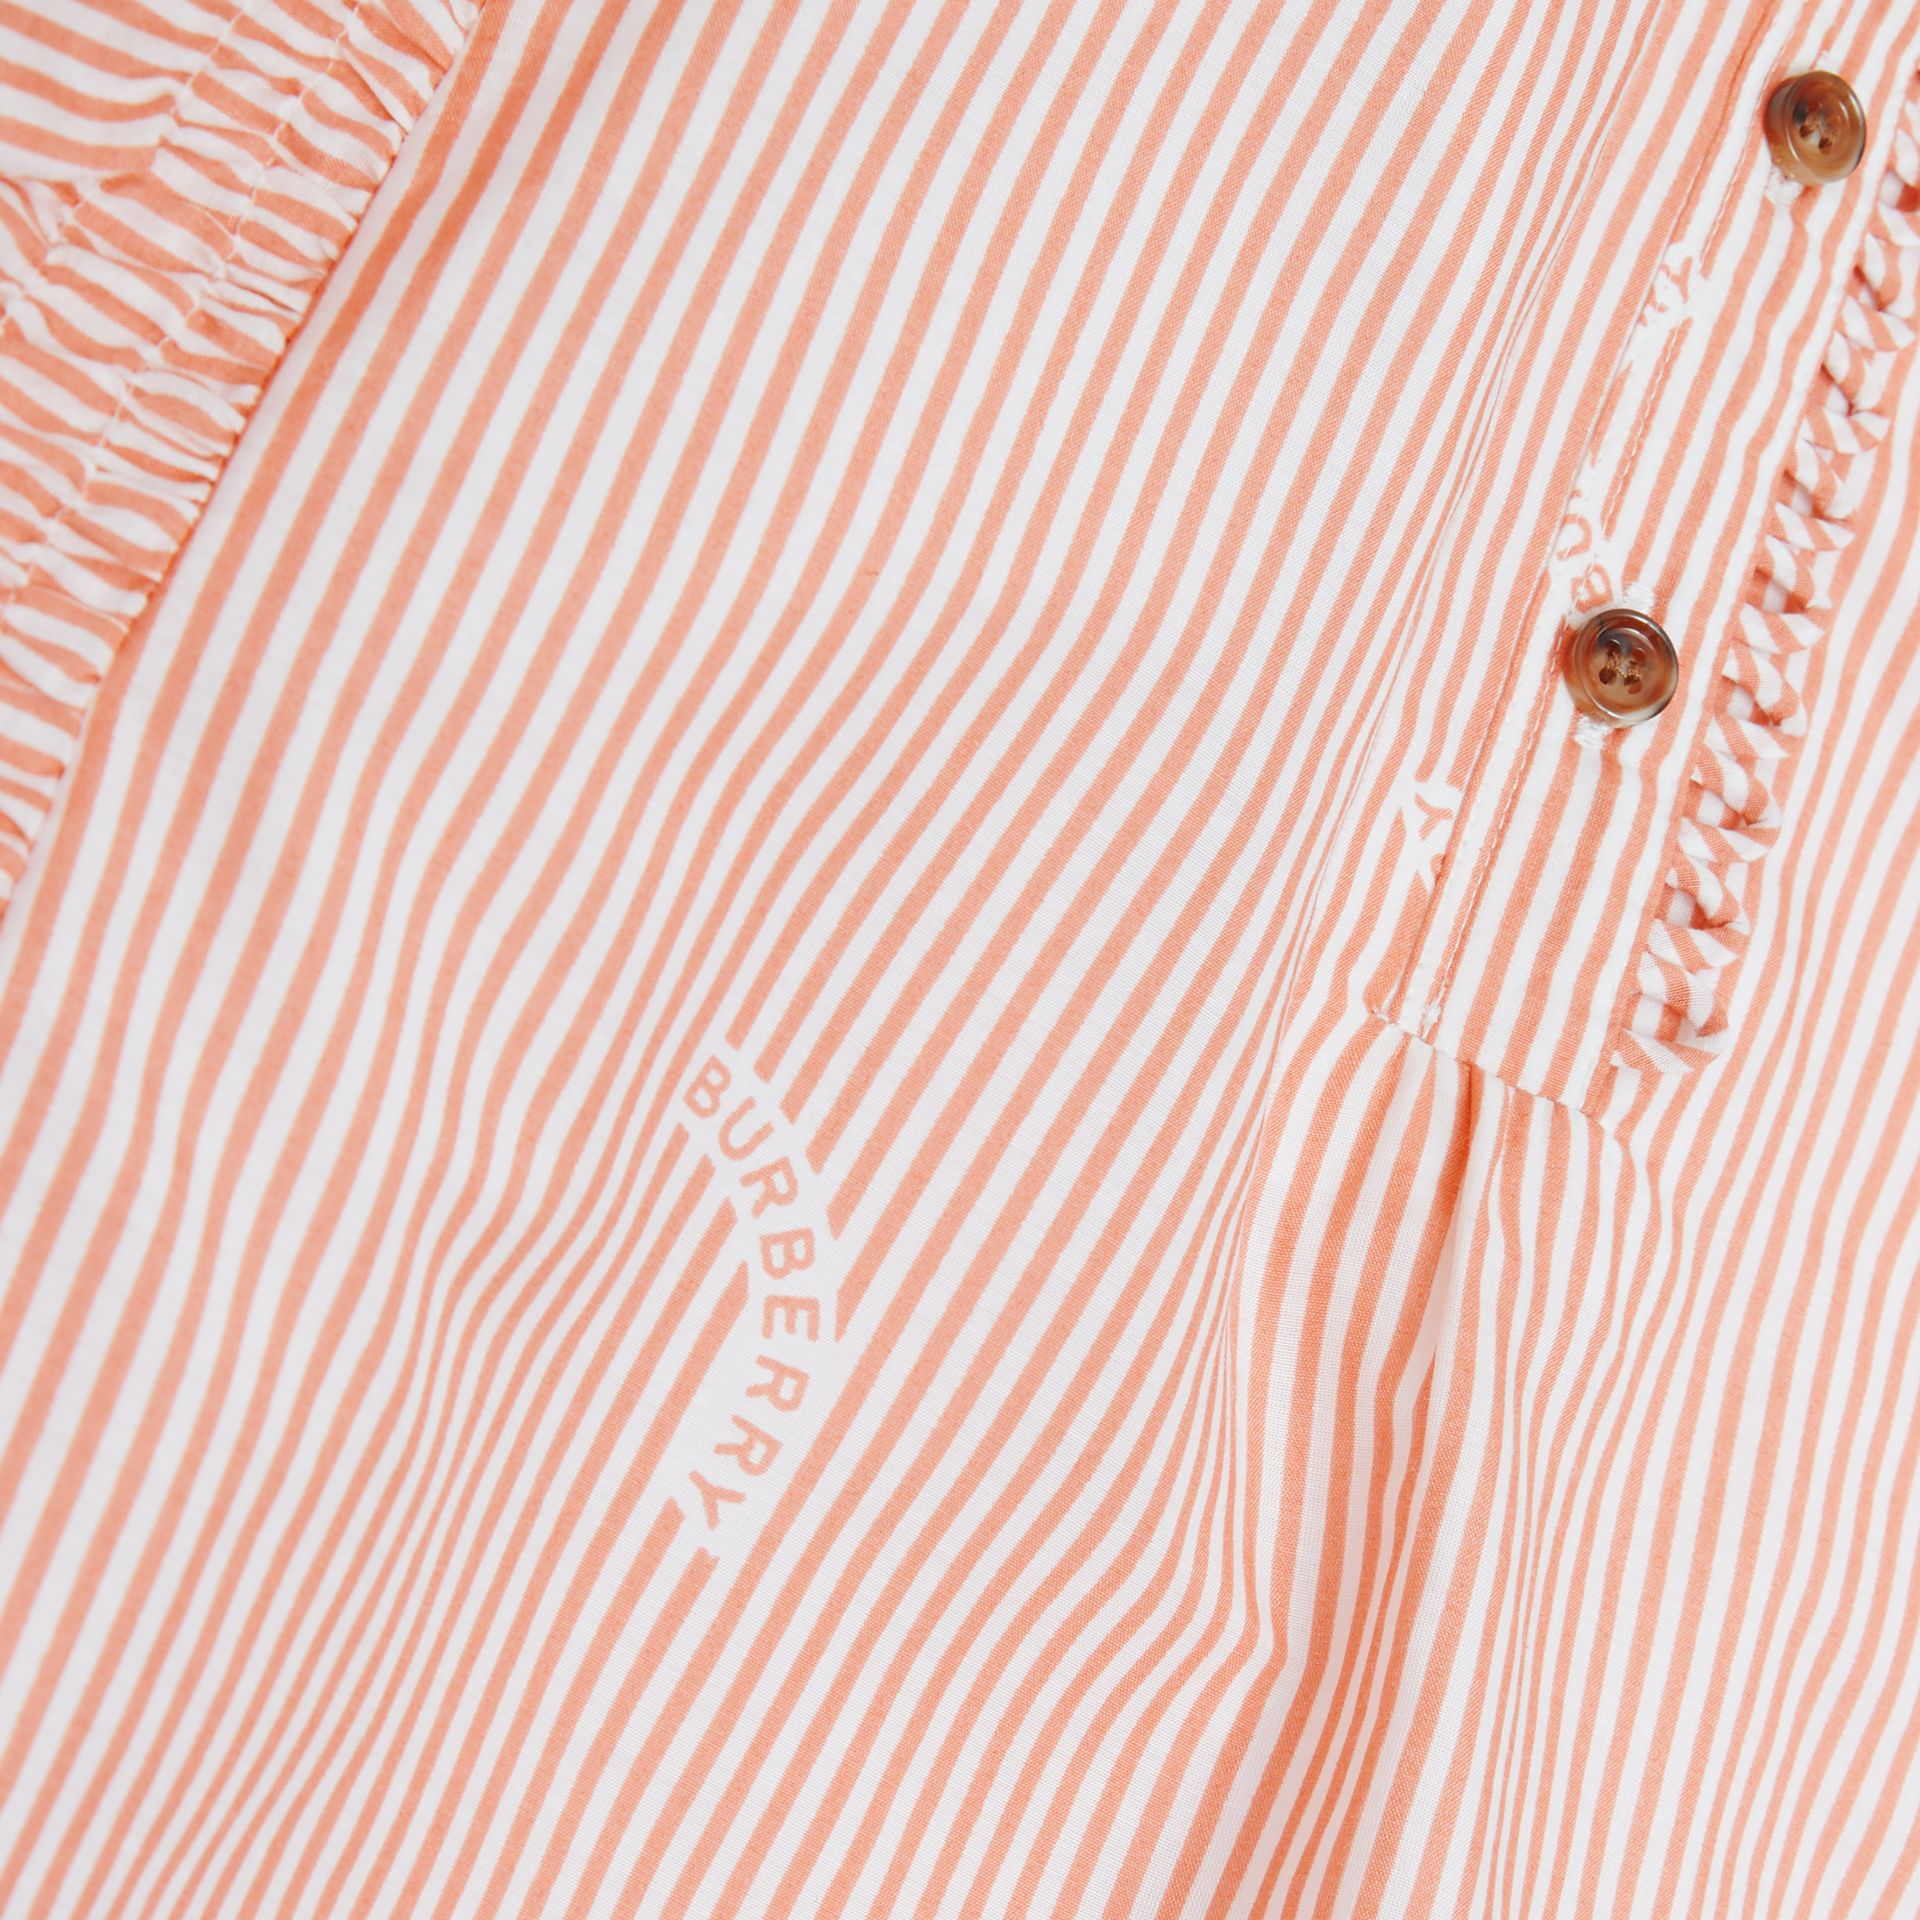 Ruffle Detail Stripe Print Cotton Silk Top in Coral Orange | Burberry - gallery image 1